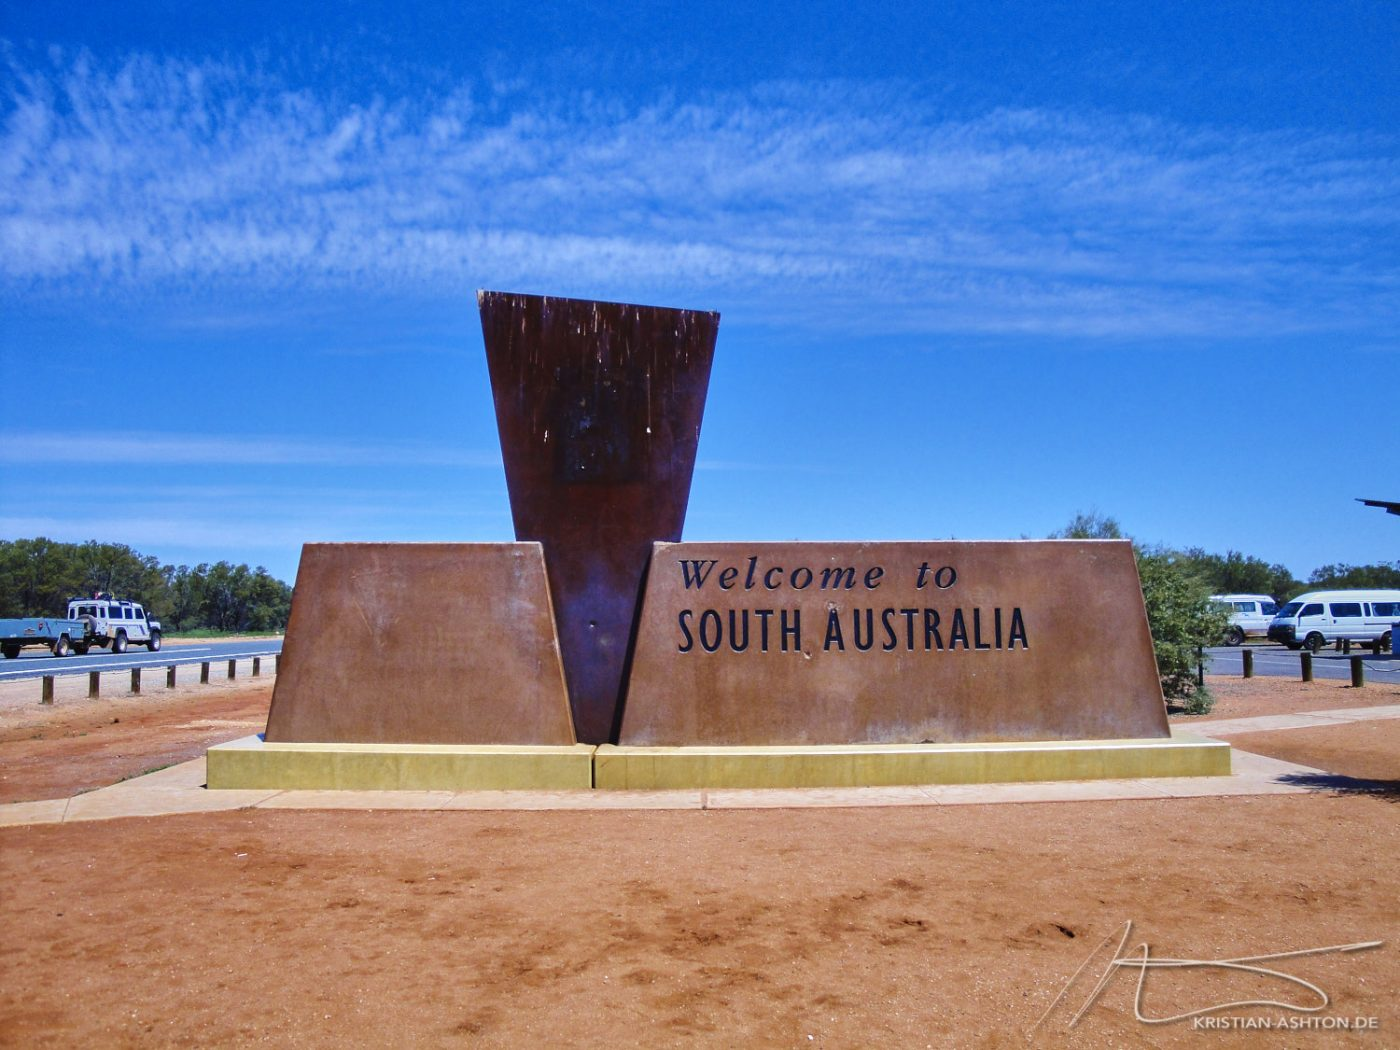 The border between the Northern Territory and South Australia